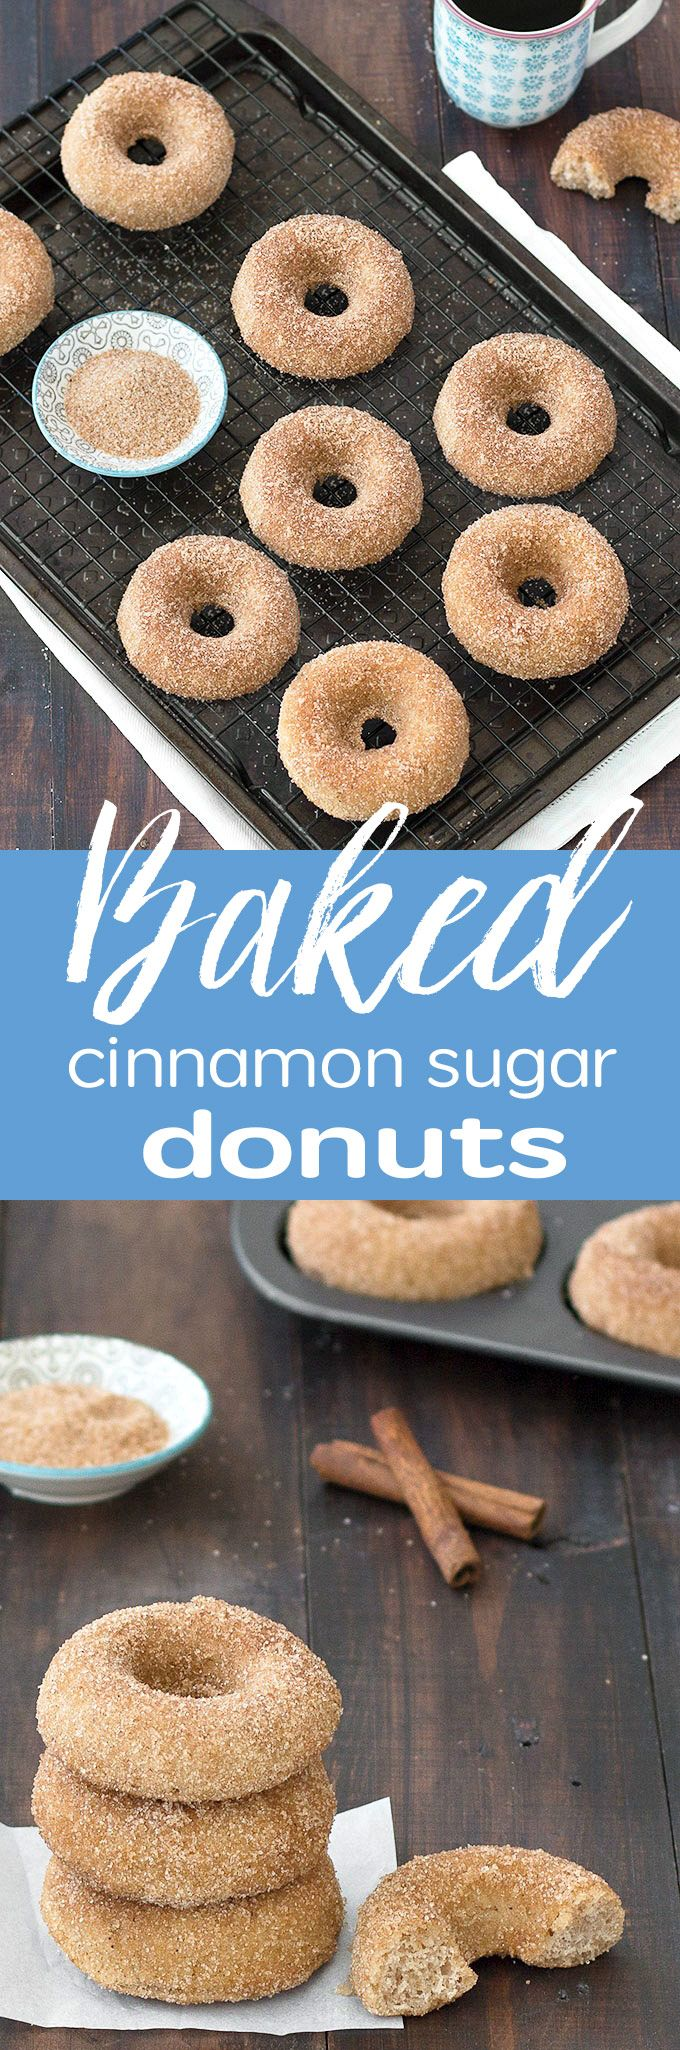 You're going to love these baked cinnamon sugar donuts. They are moist, soft, fluffy and just bursting with warm, comforting flavors like cinnamon and nutmeg (soft sugar cookie recipe cinnamon rolls)